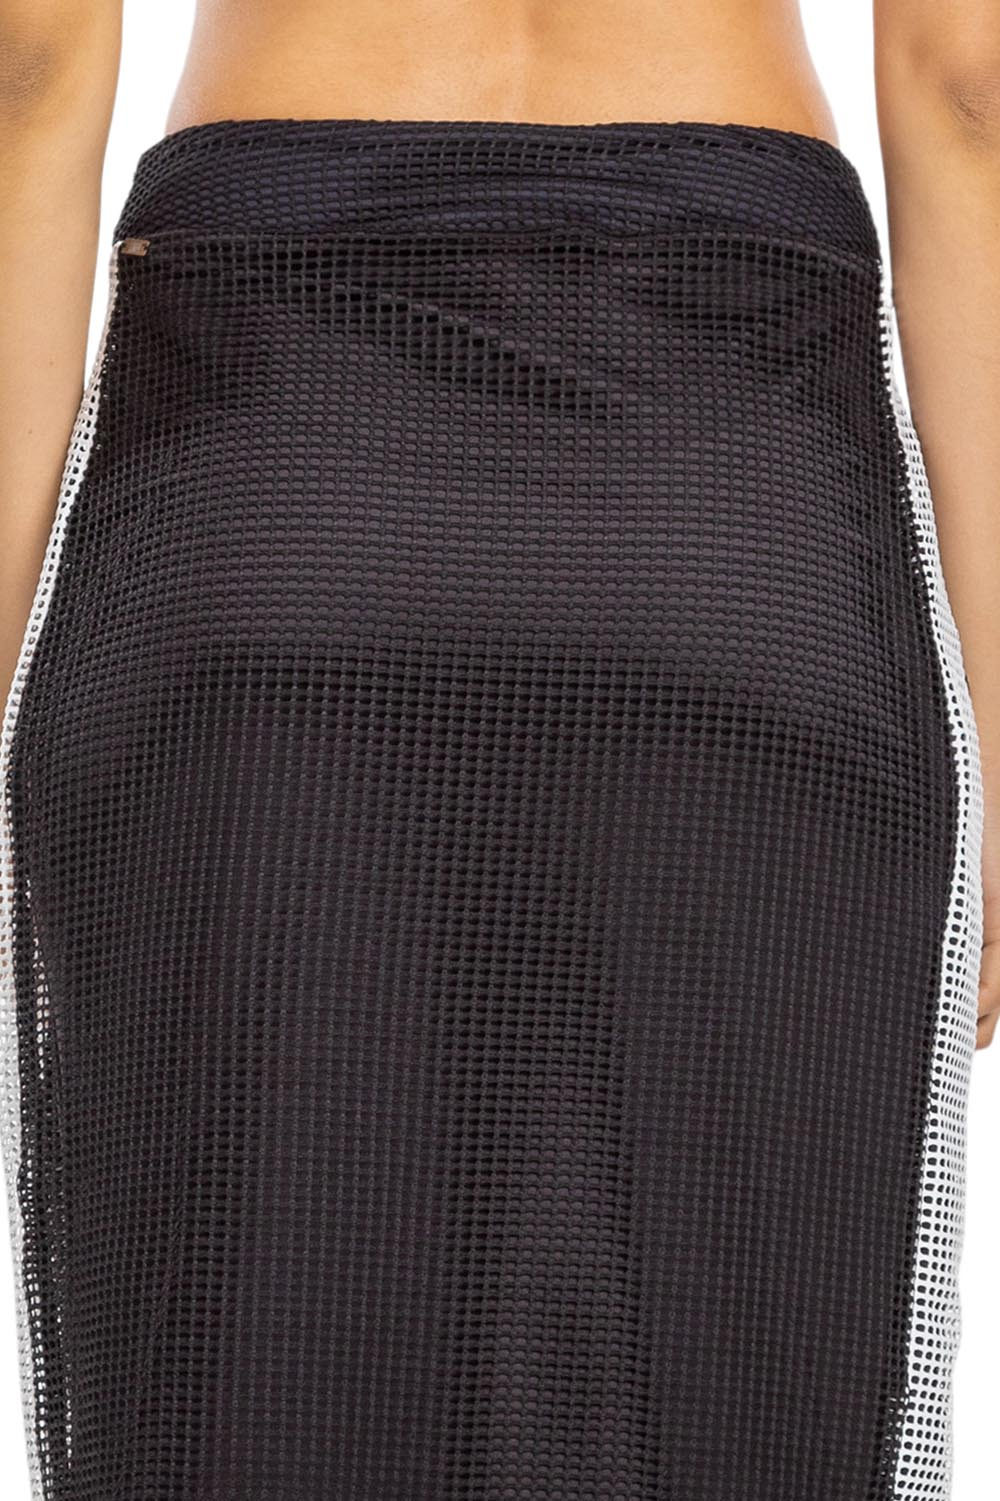 Sportif Seaside Skirt